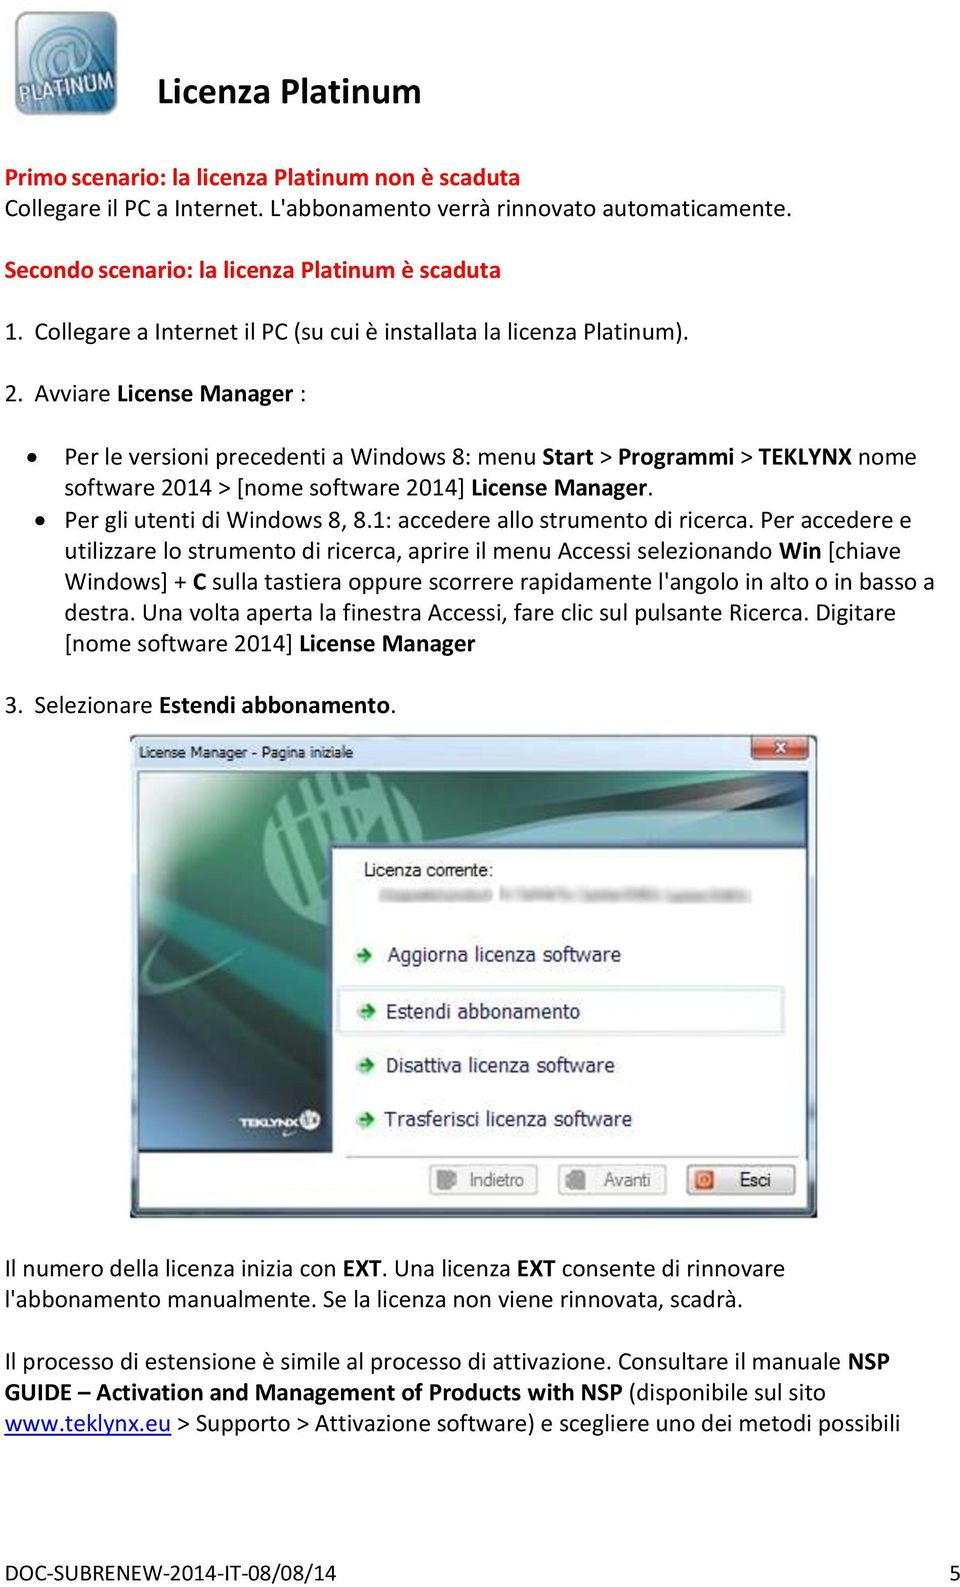 Avviare License Manager : Per le versioni precedenti a Windows 8: menu Start > Programmi > TEKLYNX nome software 2014 > [nome software 2014] License Manager. Per gli utenti di Windows 8, 8.